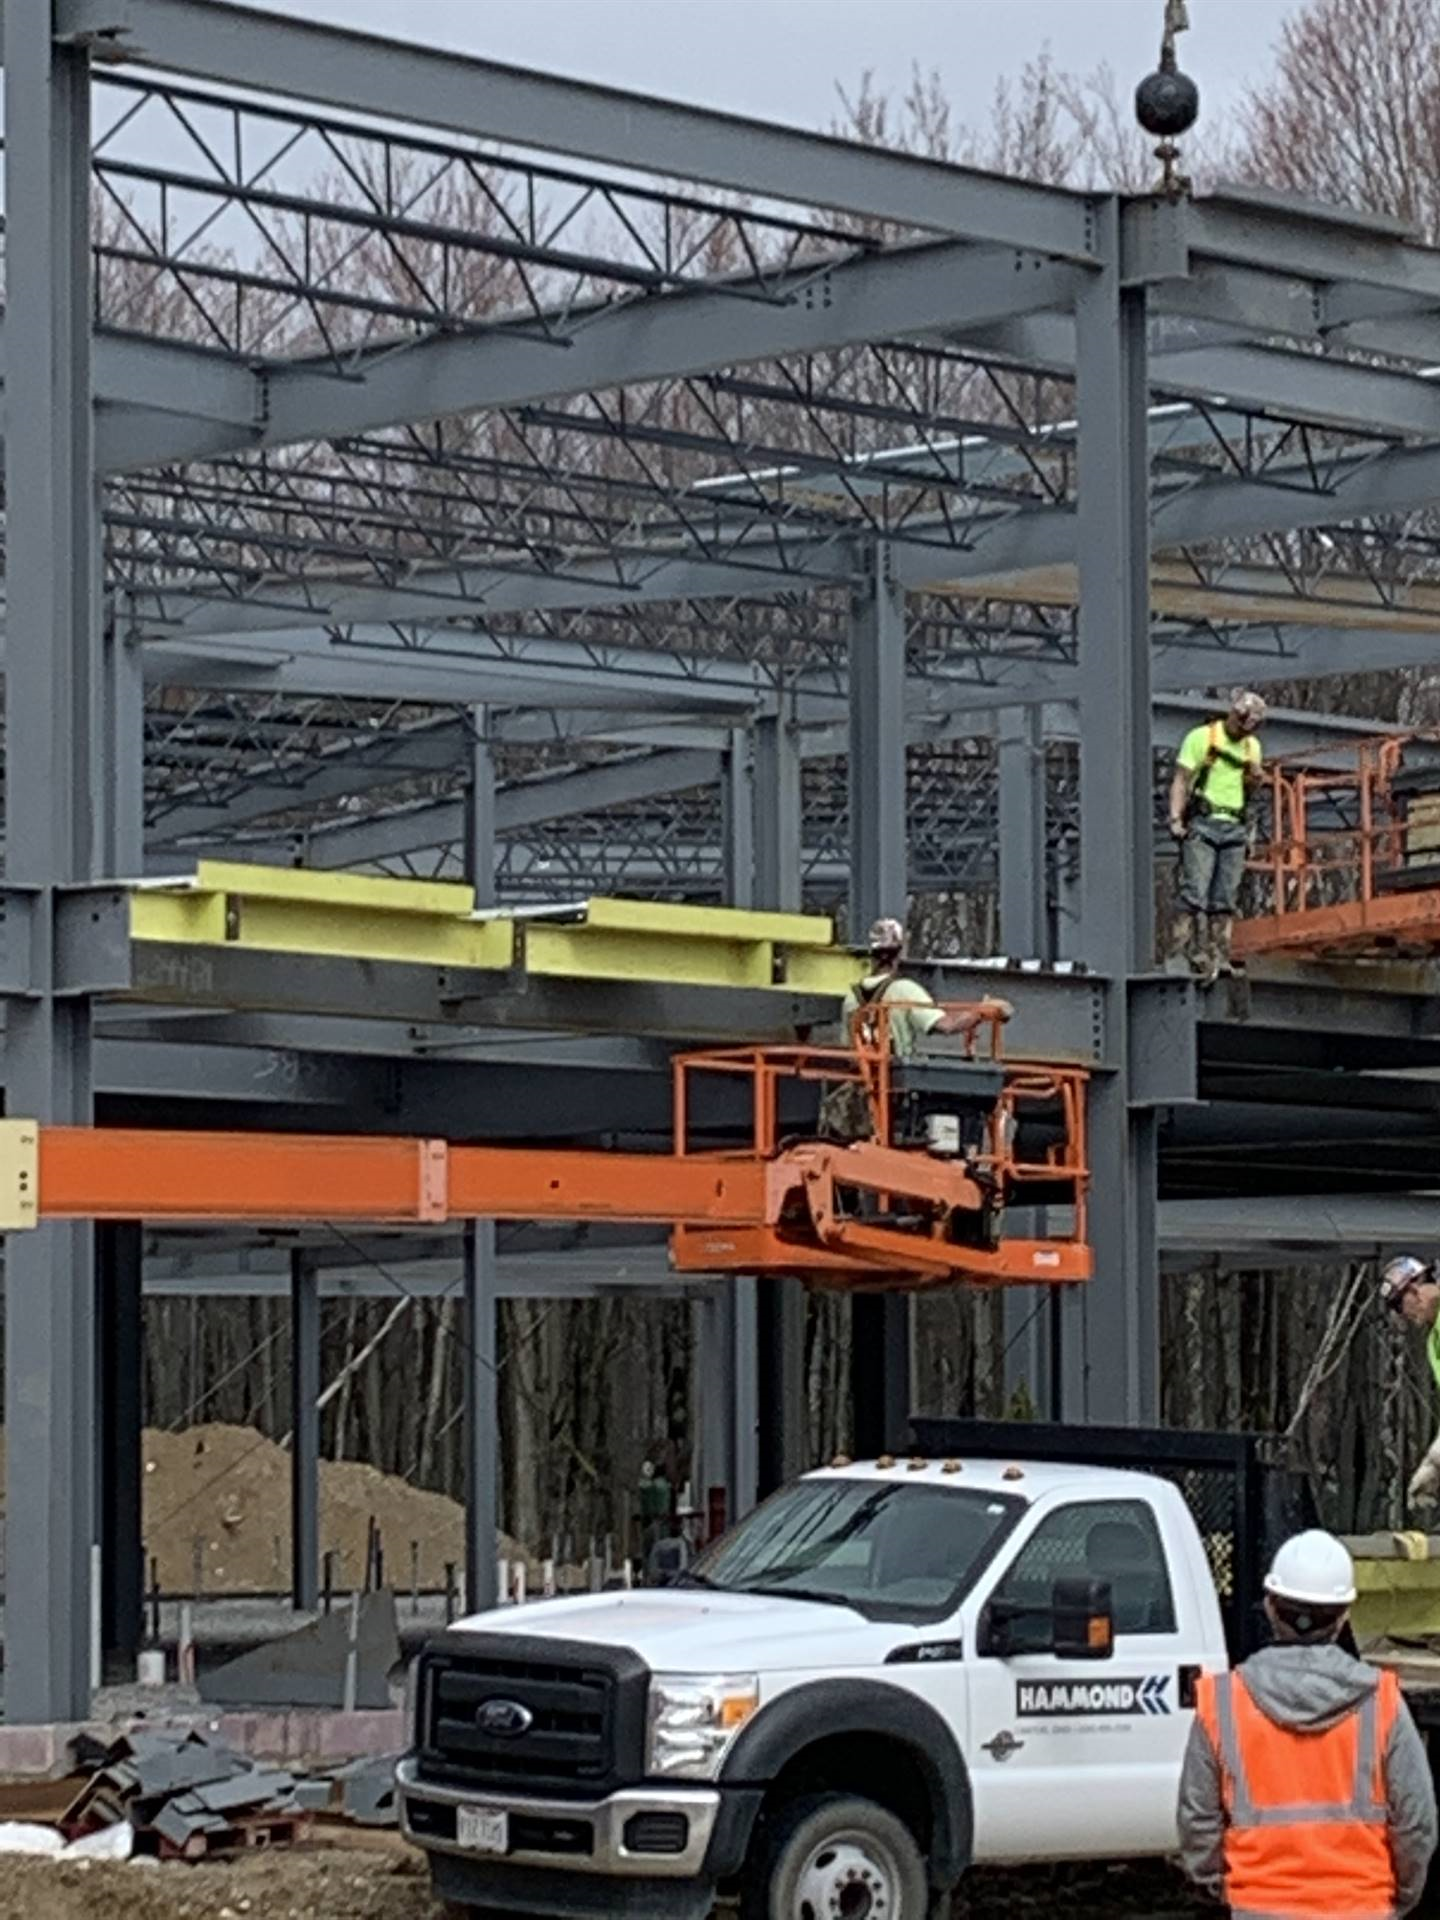 On April 8, the final beams were set in place at the new North Royalton Elementary School. These yel